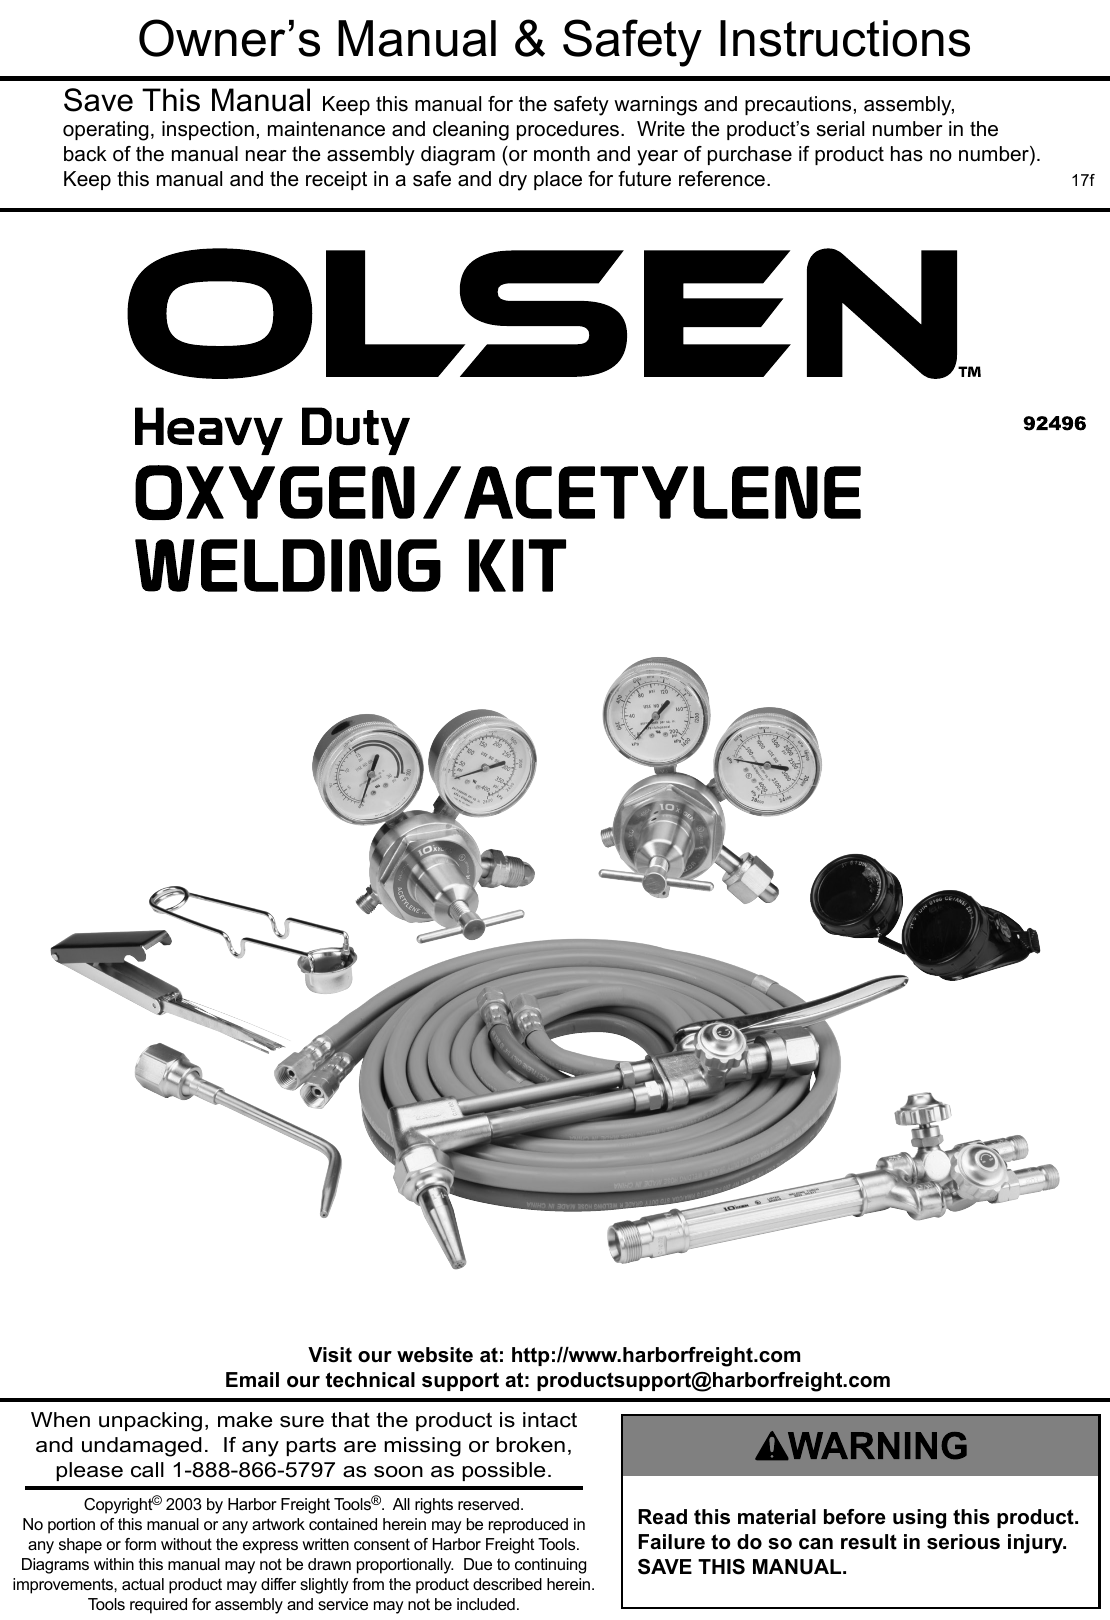 Manual For The 92496 Industrial Oxy Acetylene Welding Outfit Equipment Diagram